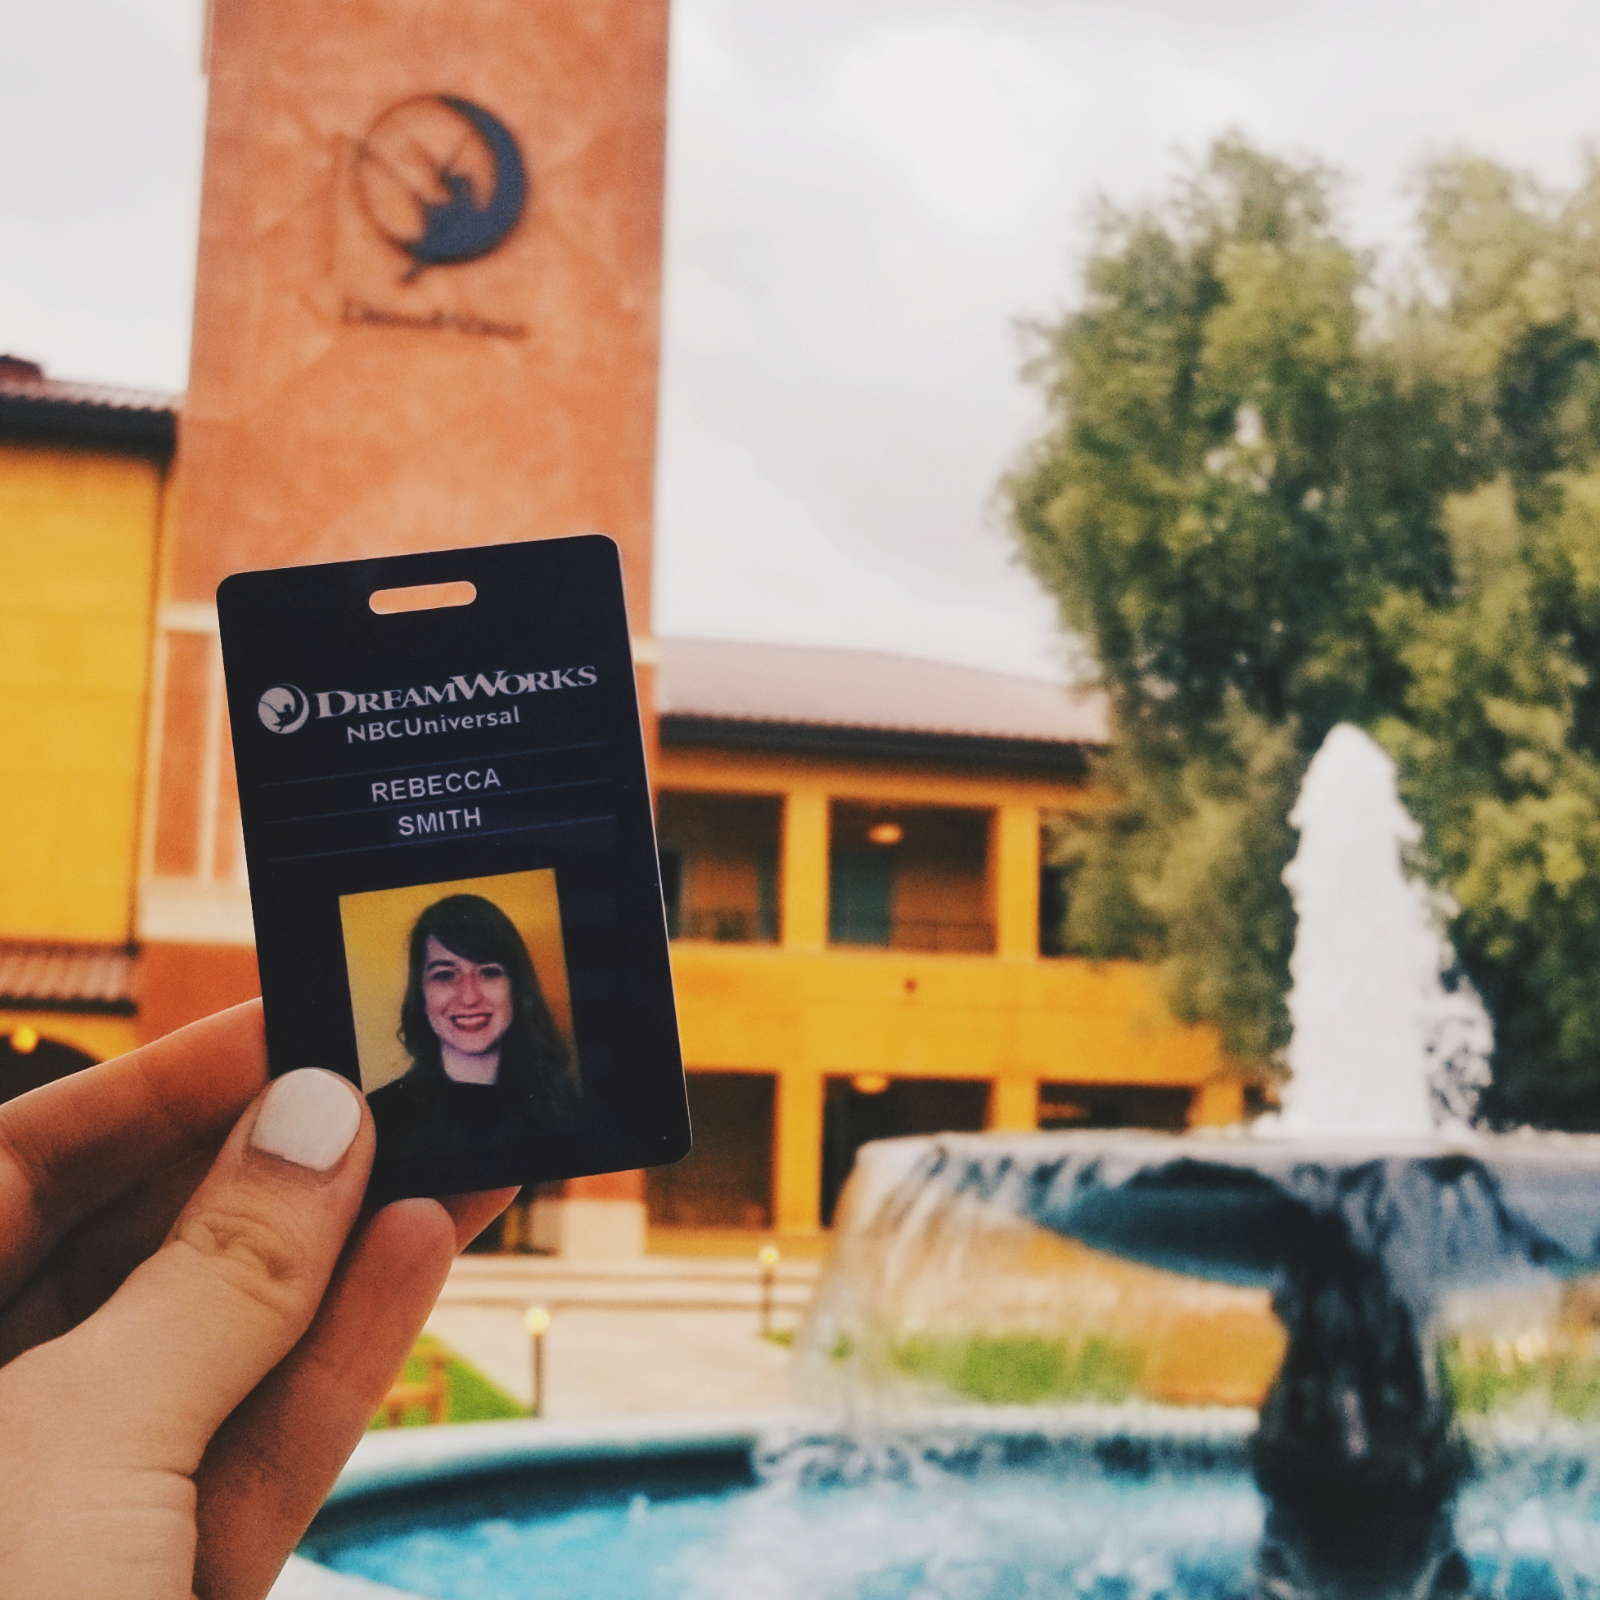 A DreamWorks employee badge in front a fountain and a building that has the DreamWorks logo on it